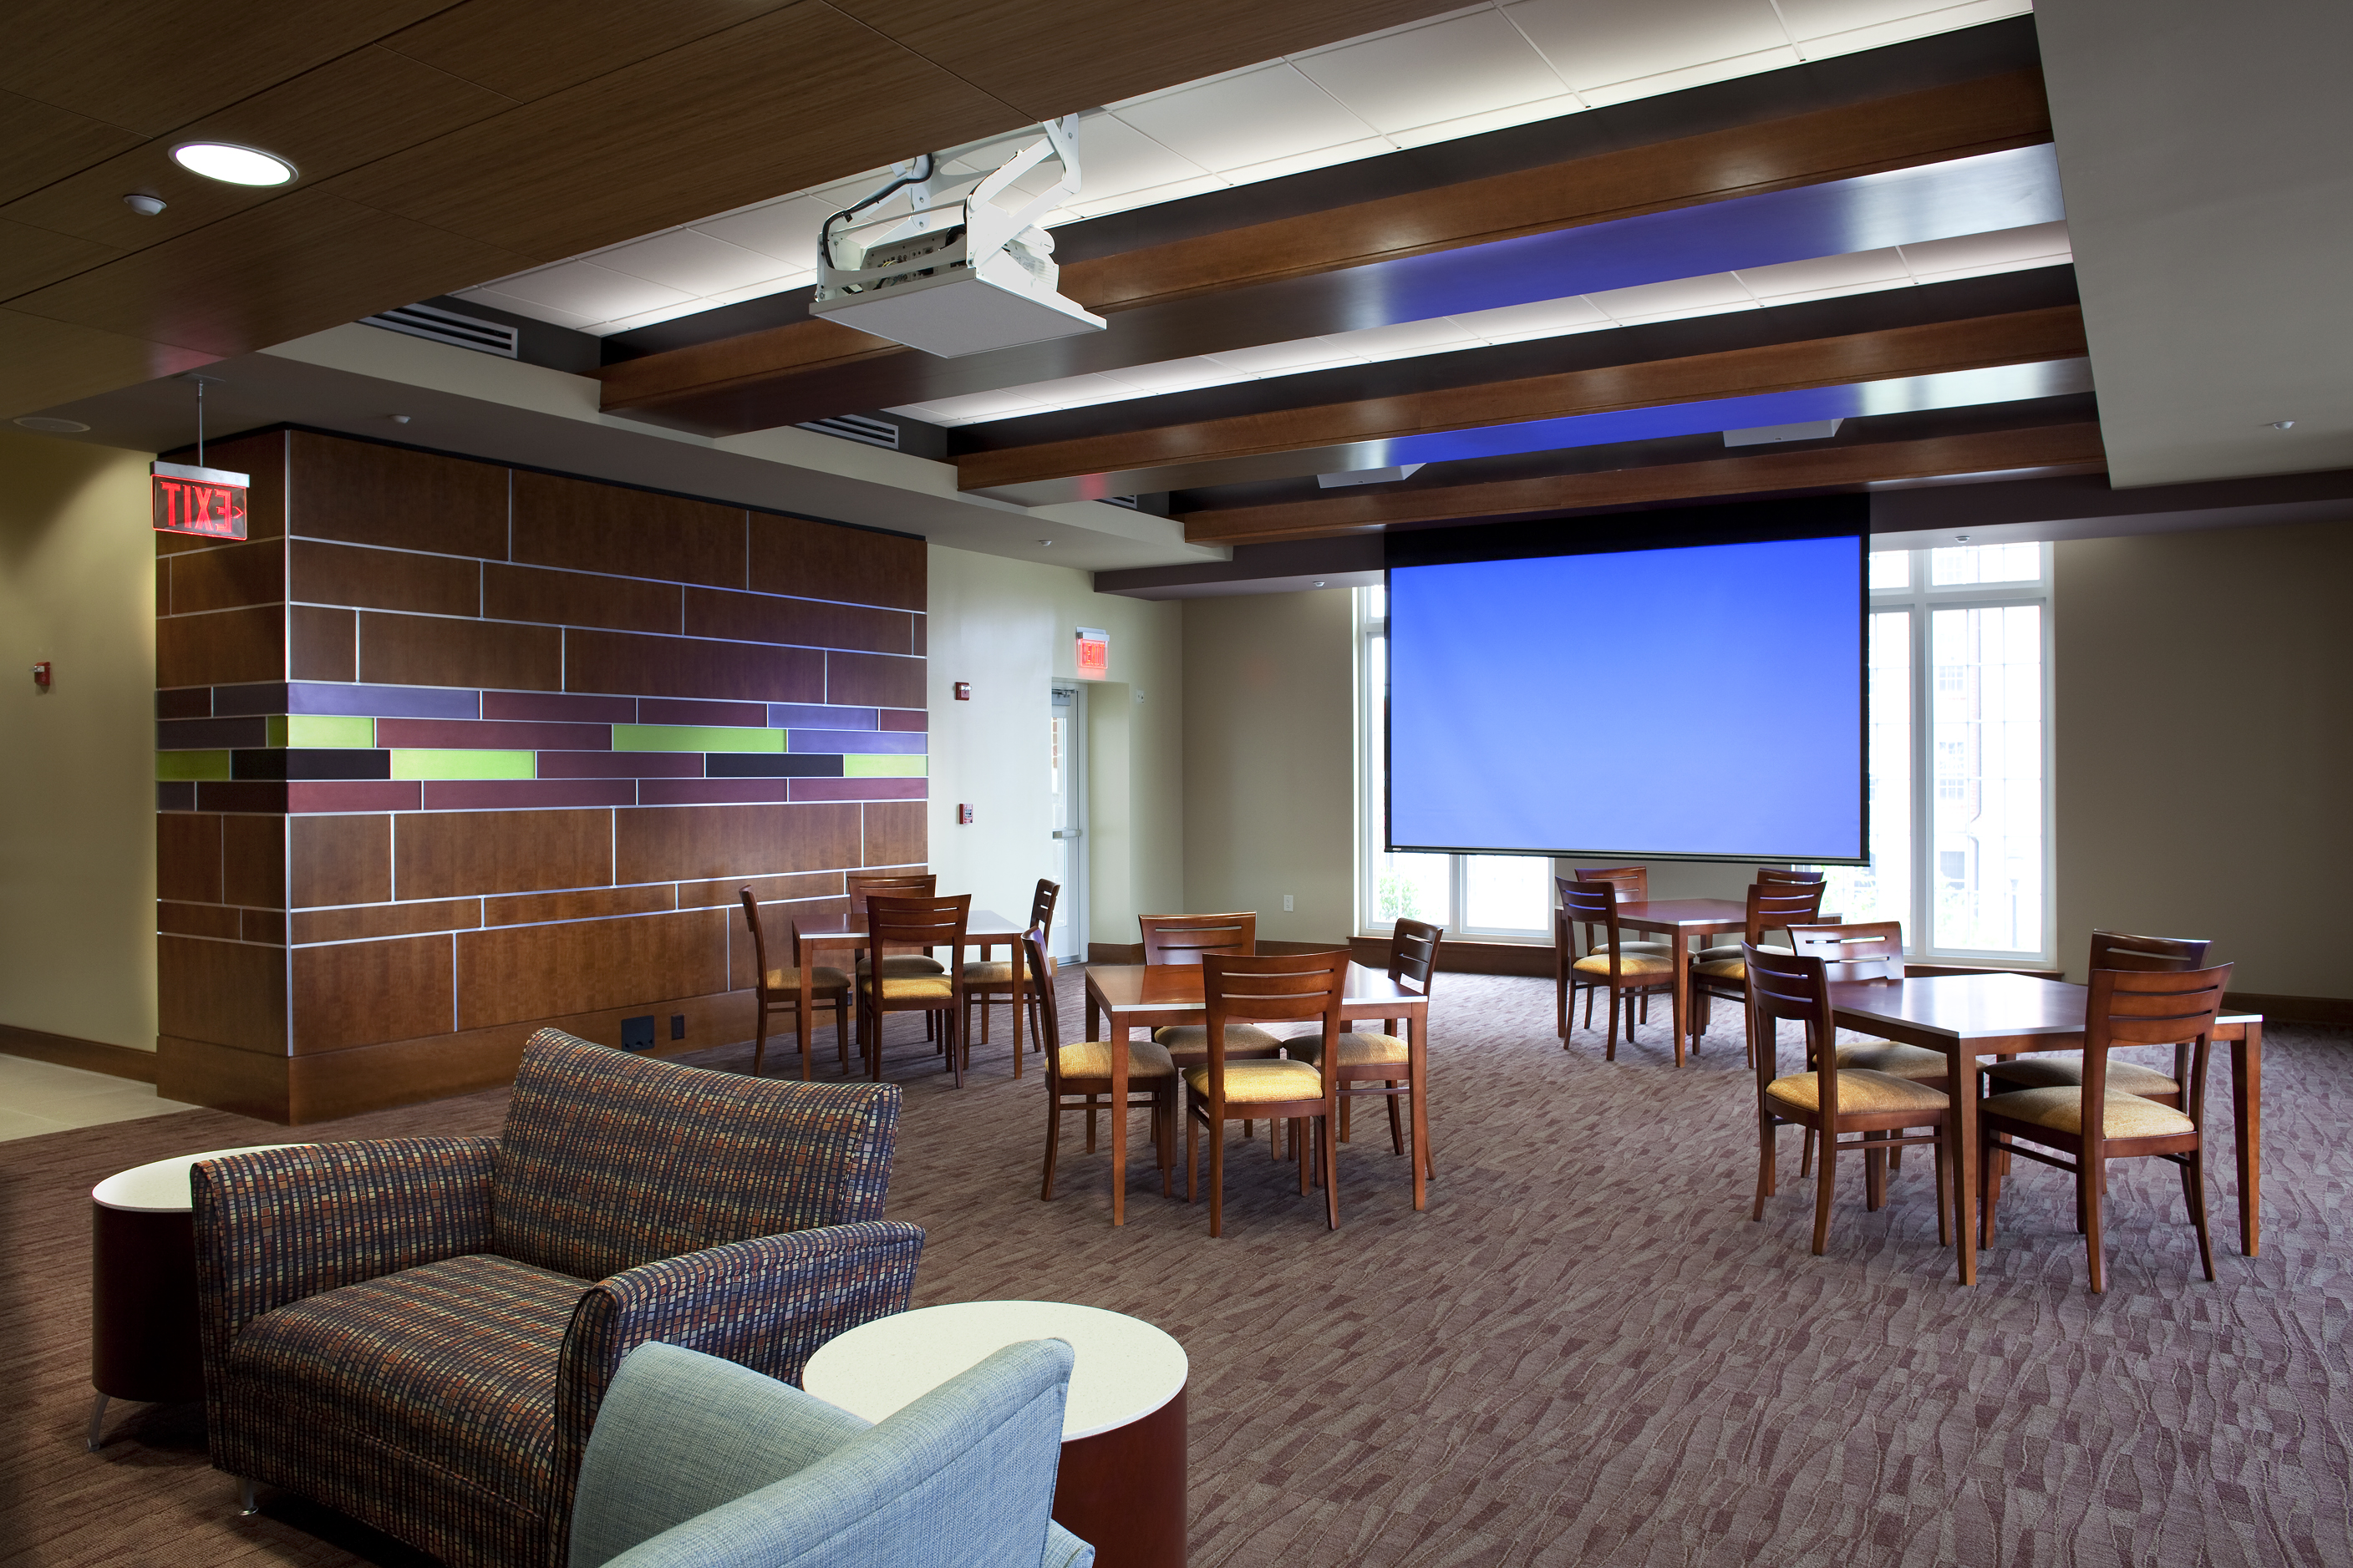 Residence hall 1516 university architects for Multifamily design